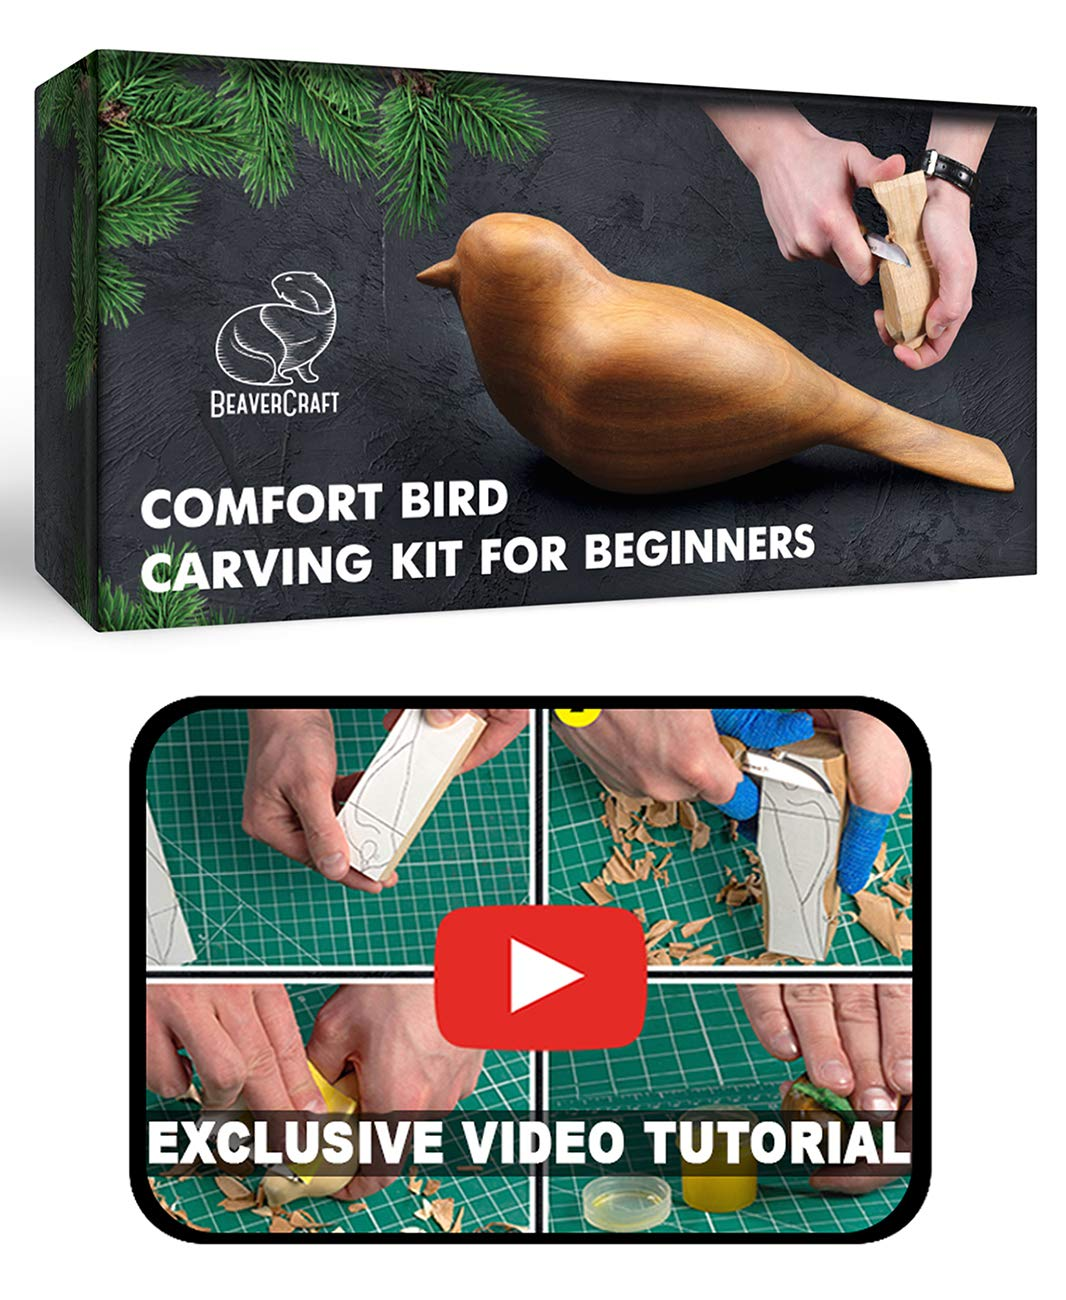 BeaverCraft Comfort Bird DIY Complete Starter Whittling Knife Kit for Beginners Adults and Teens - Book Fun Wood Carving Project Carve Bird - Hobby Whittling Knife - Learning Woodworking Kit for Teen by BeaverCraft